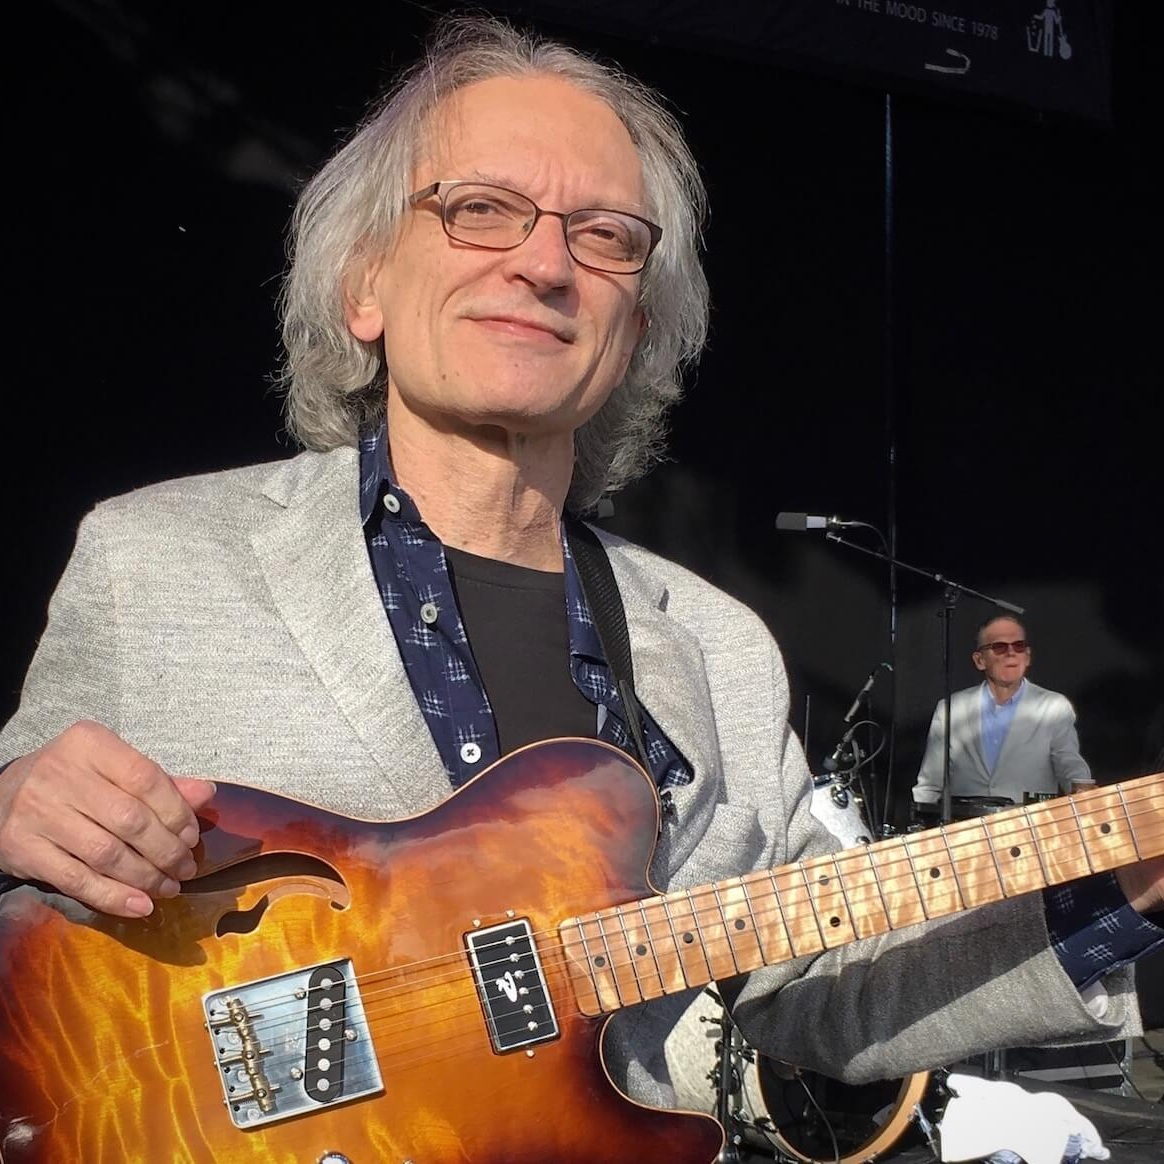 Sonny Landreth - THURS, SONGS OVER STYLE - GET TICKETS